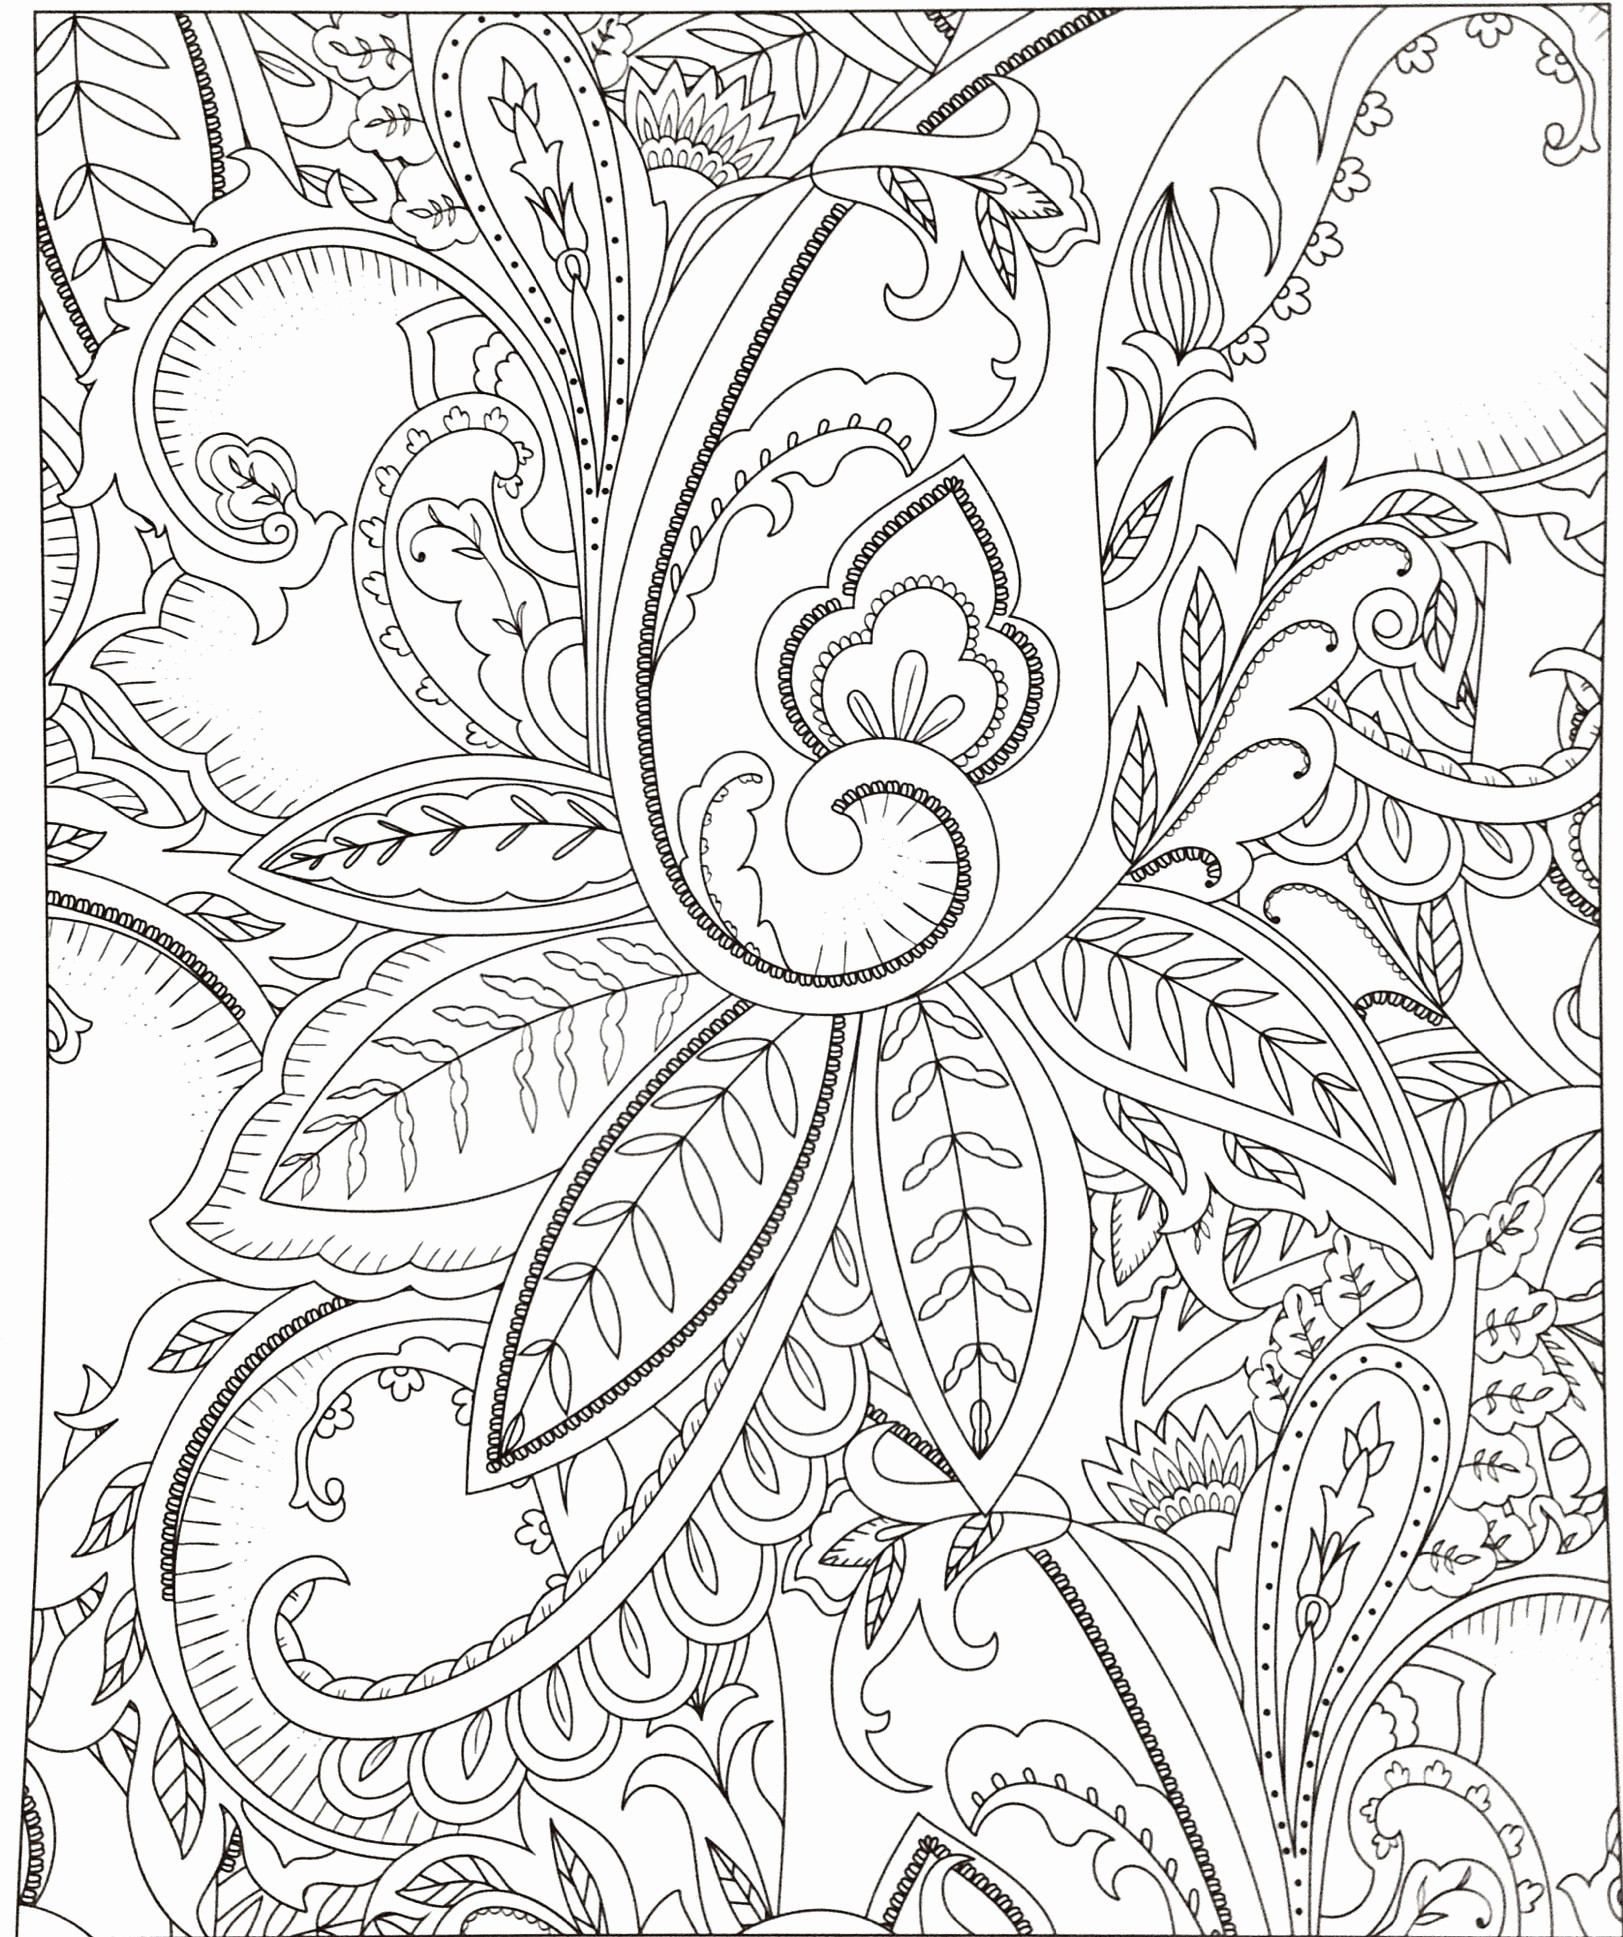 white bowl vase of respect coloring sheets lovely cool vases flower vase coloring page throughout respect coloring sheets lovely cool vases flower vase coloring page pages flowers in a top i